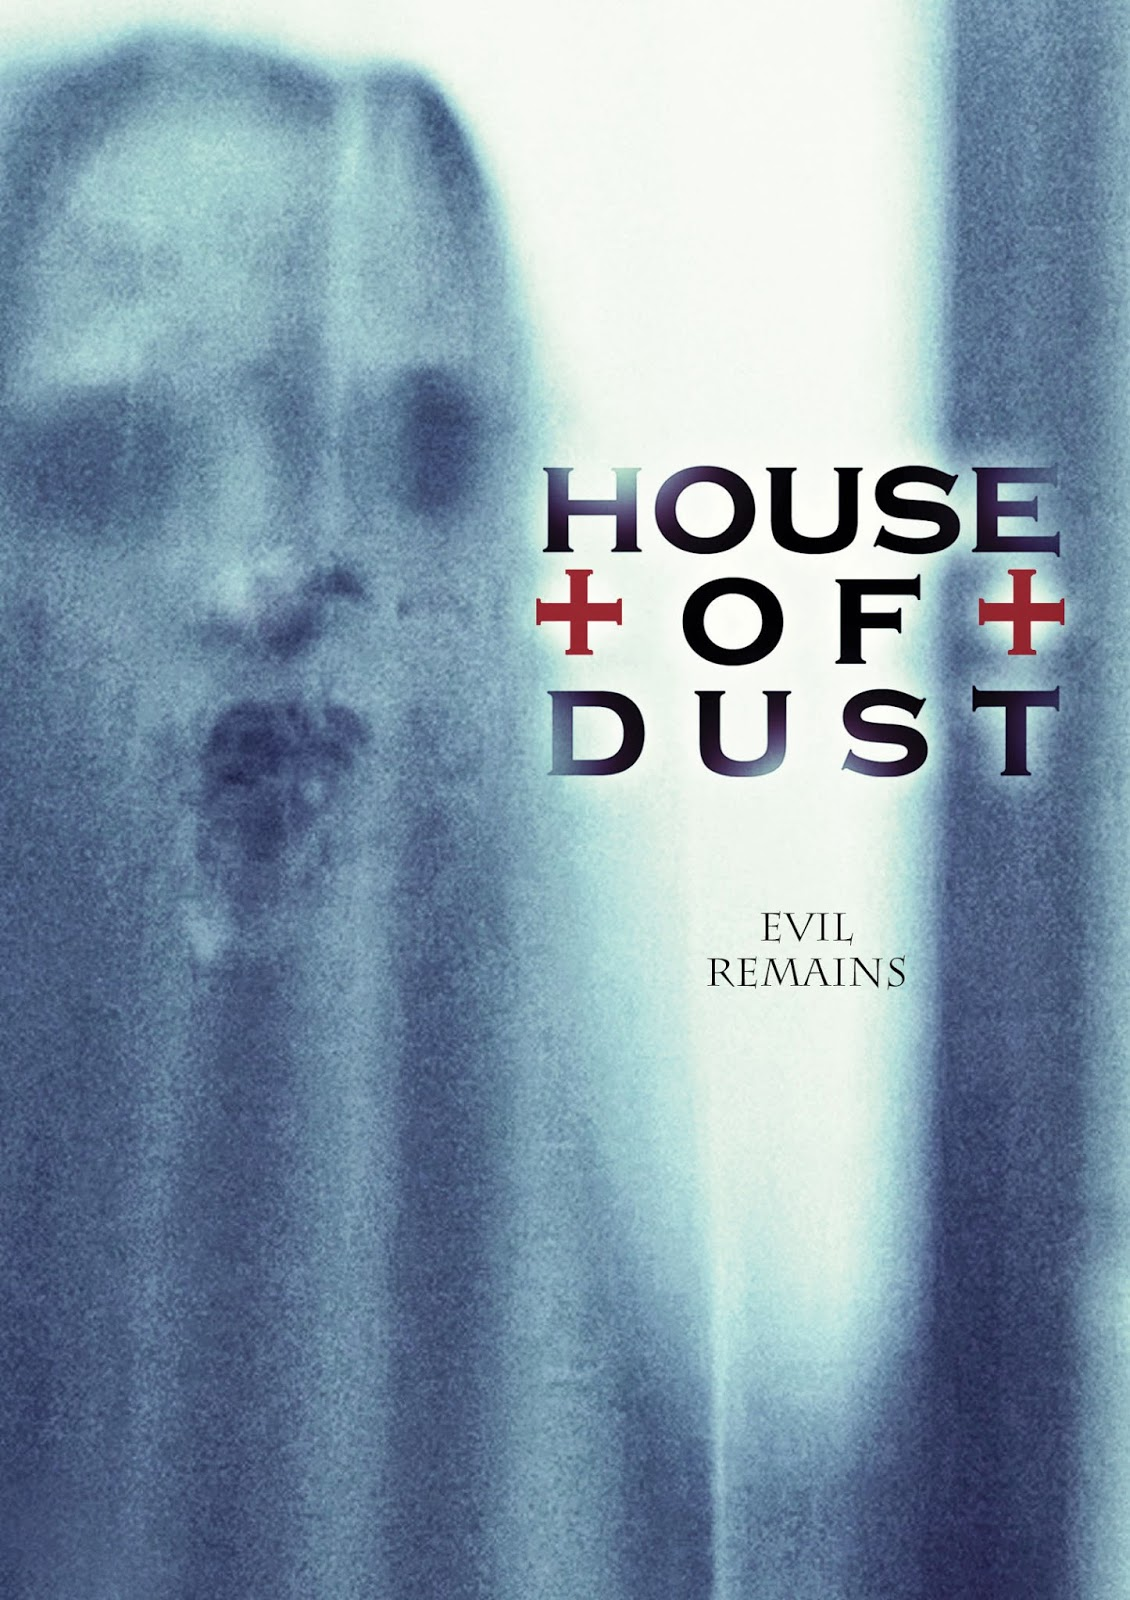 House of Dust (2014)